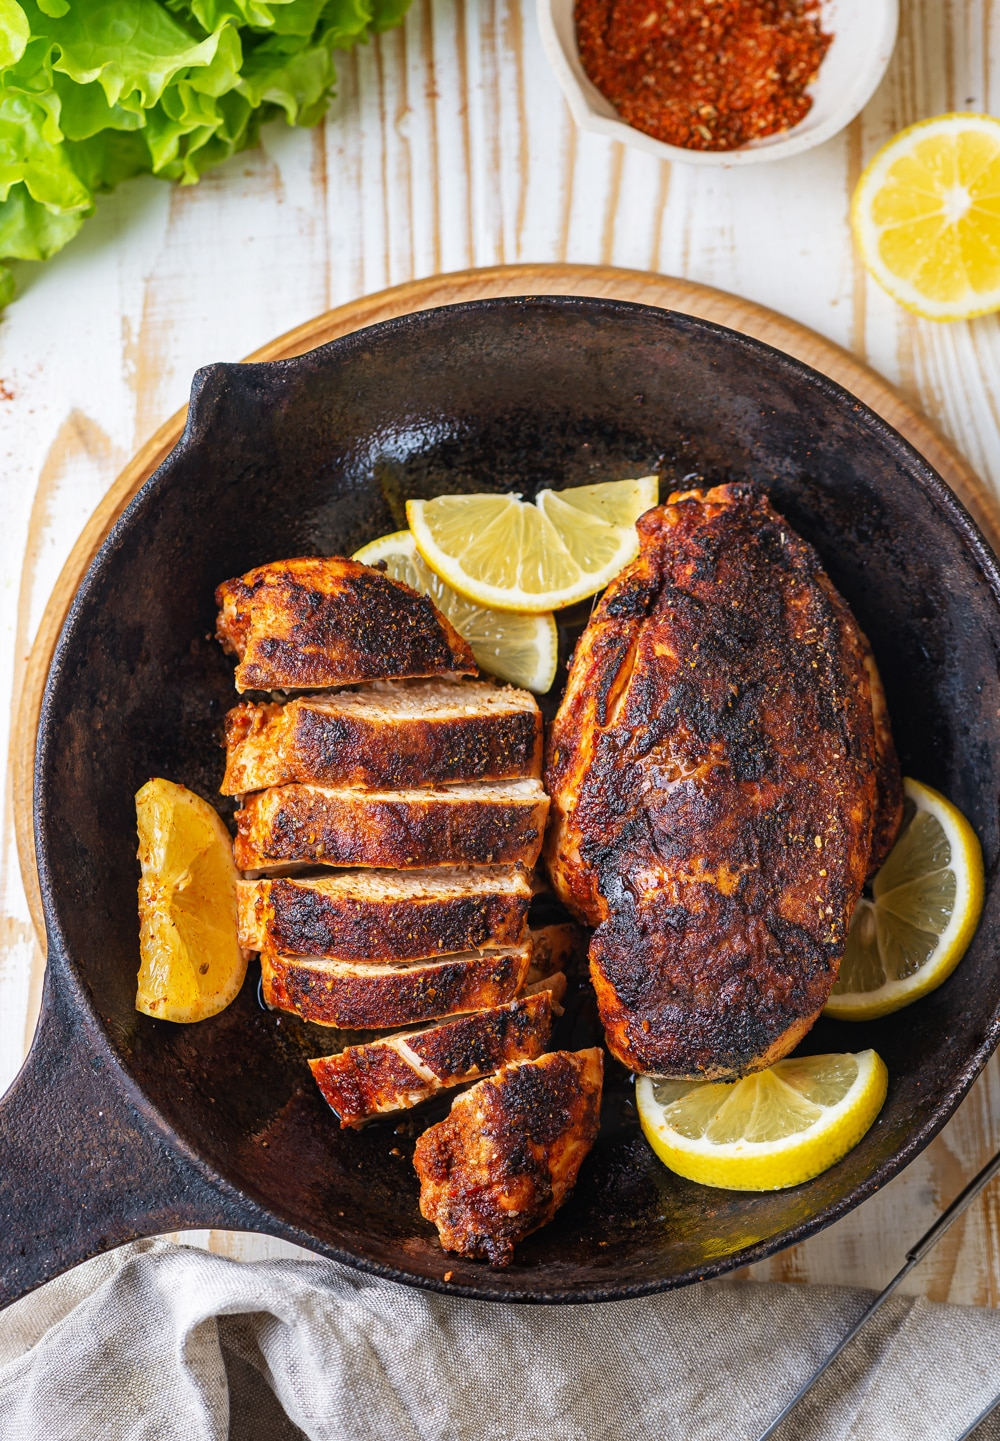 An overhead view of a whole cooked piece of blackened chicken and a sliced cooked piece of blackened chicken in a skillet. Five lemon slices are surrounding the chicken in the skillet. The skillet is on a wooden saucer on a wood table.